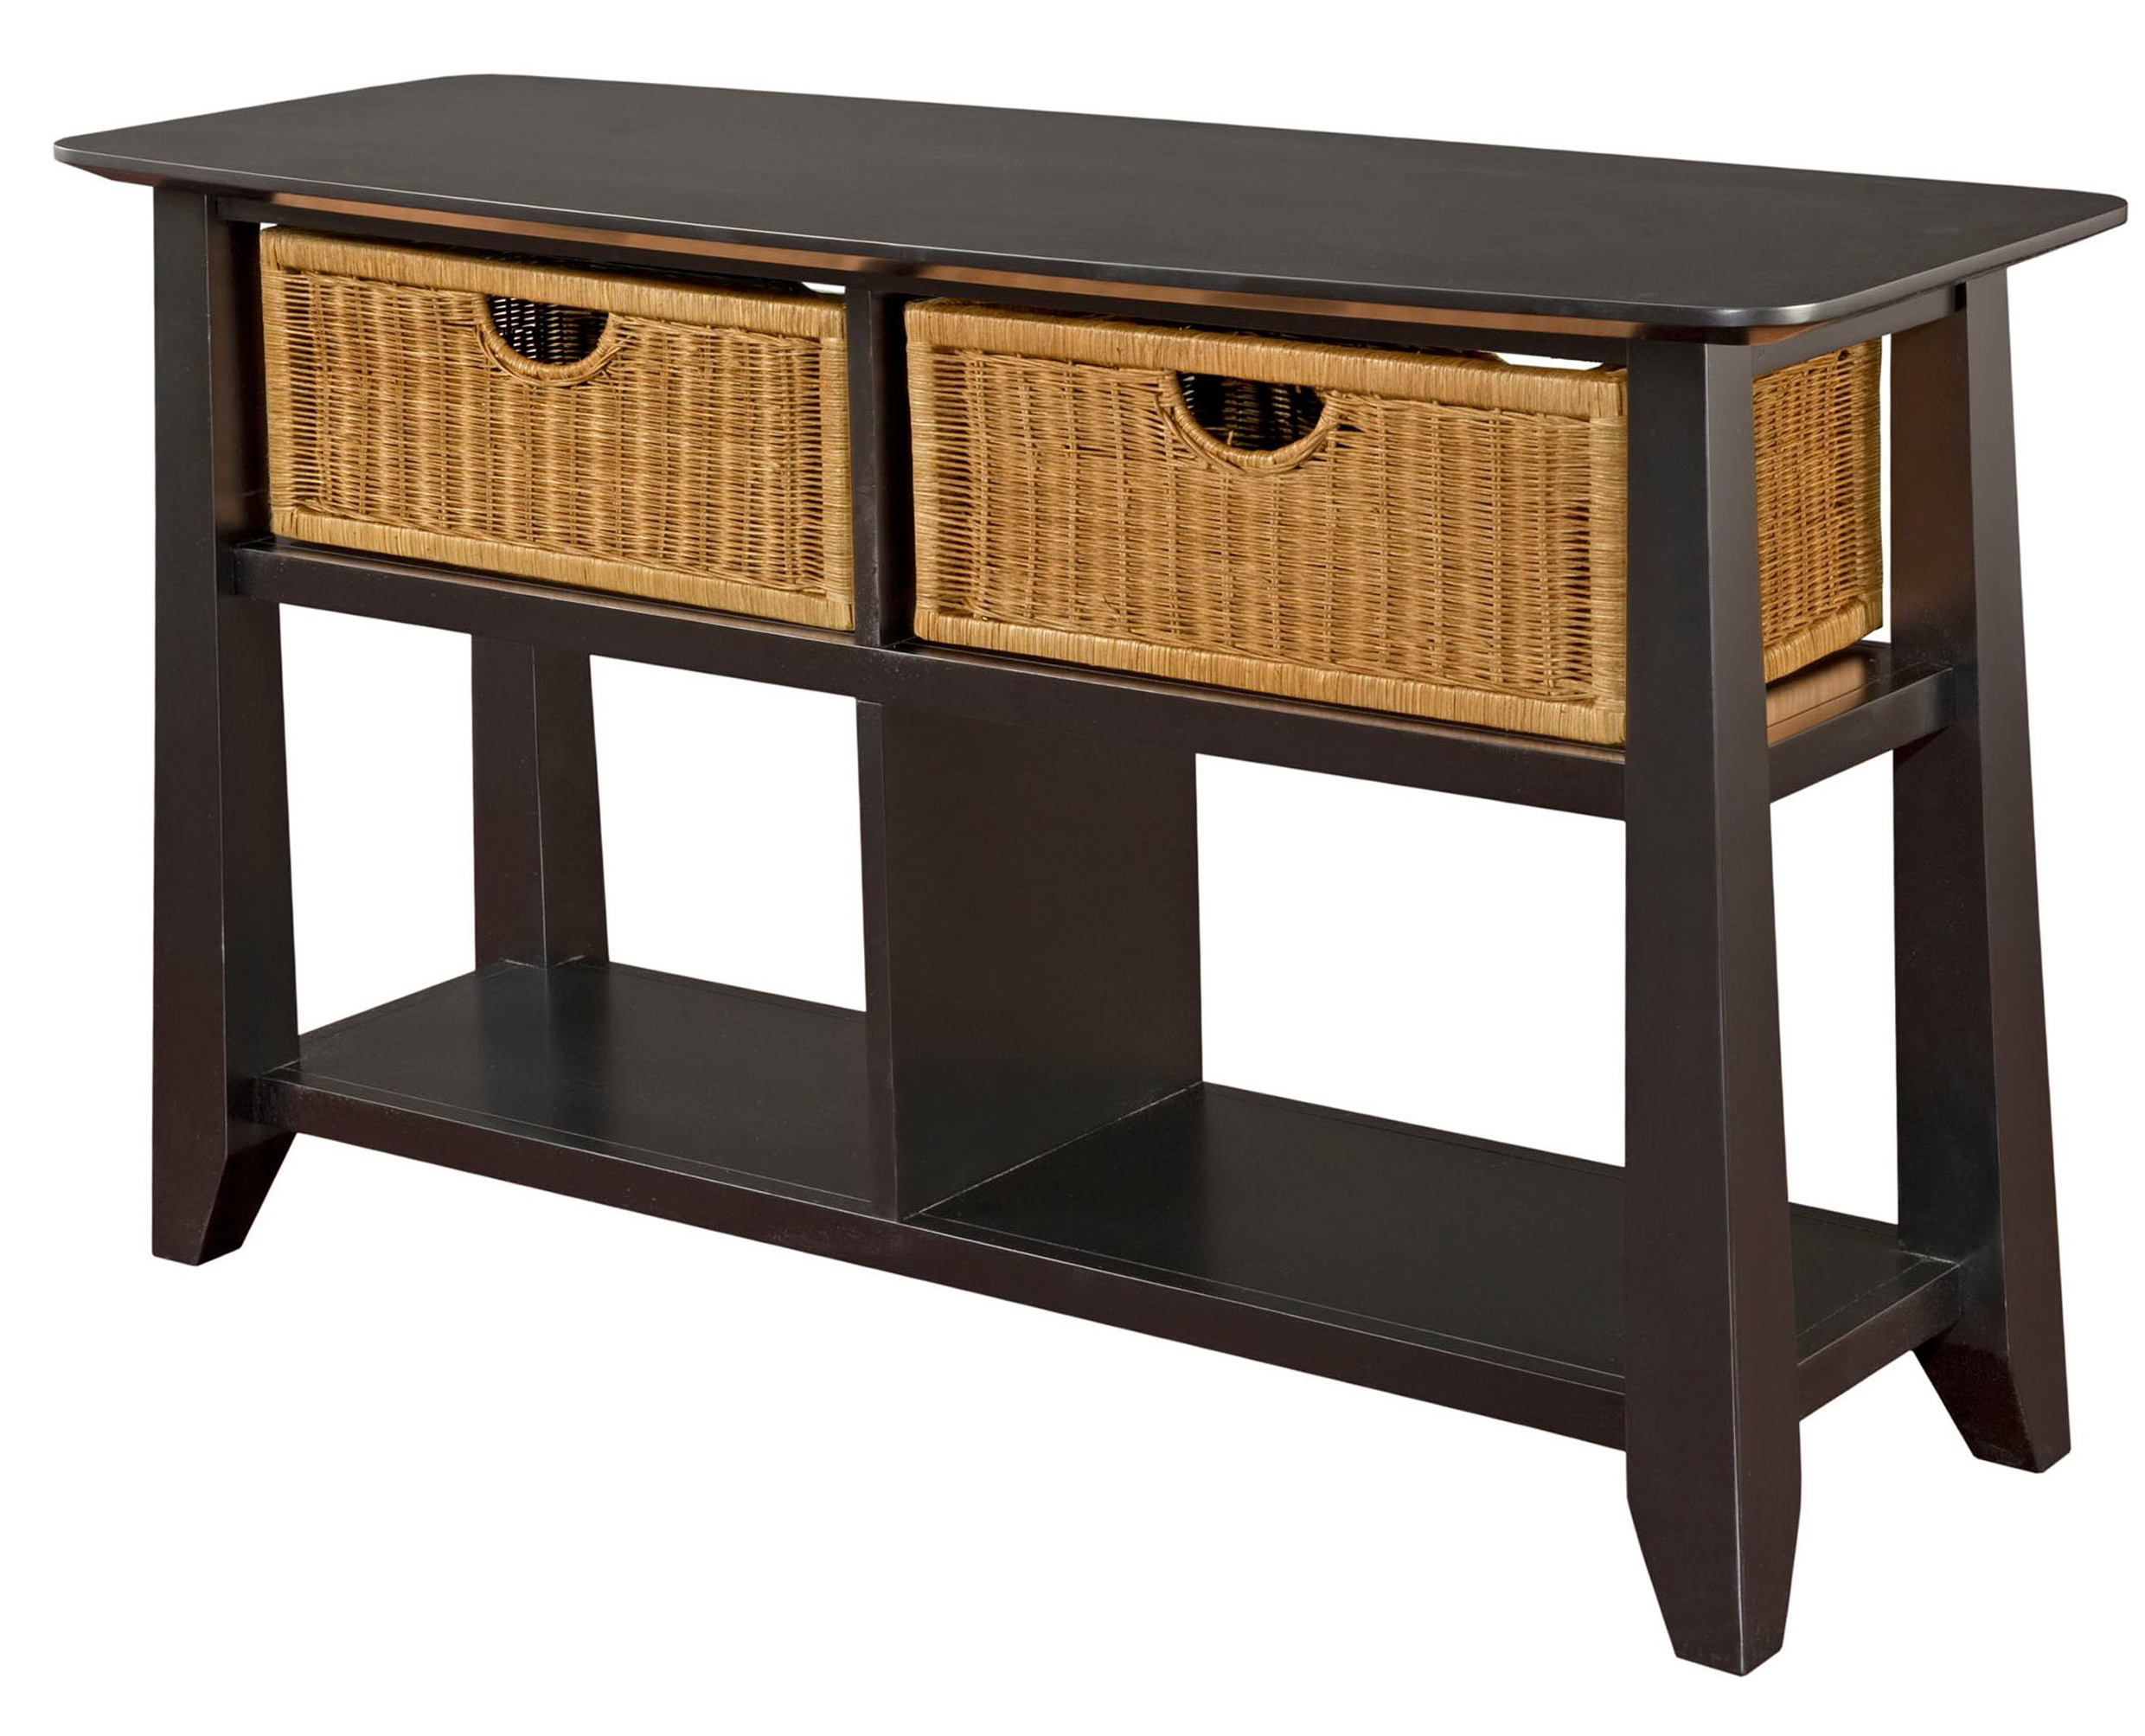 Console Tables With Storage Baskets